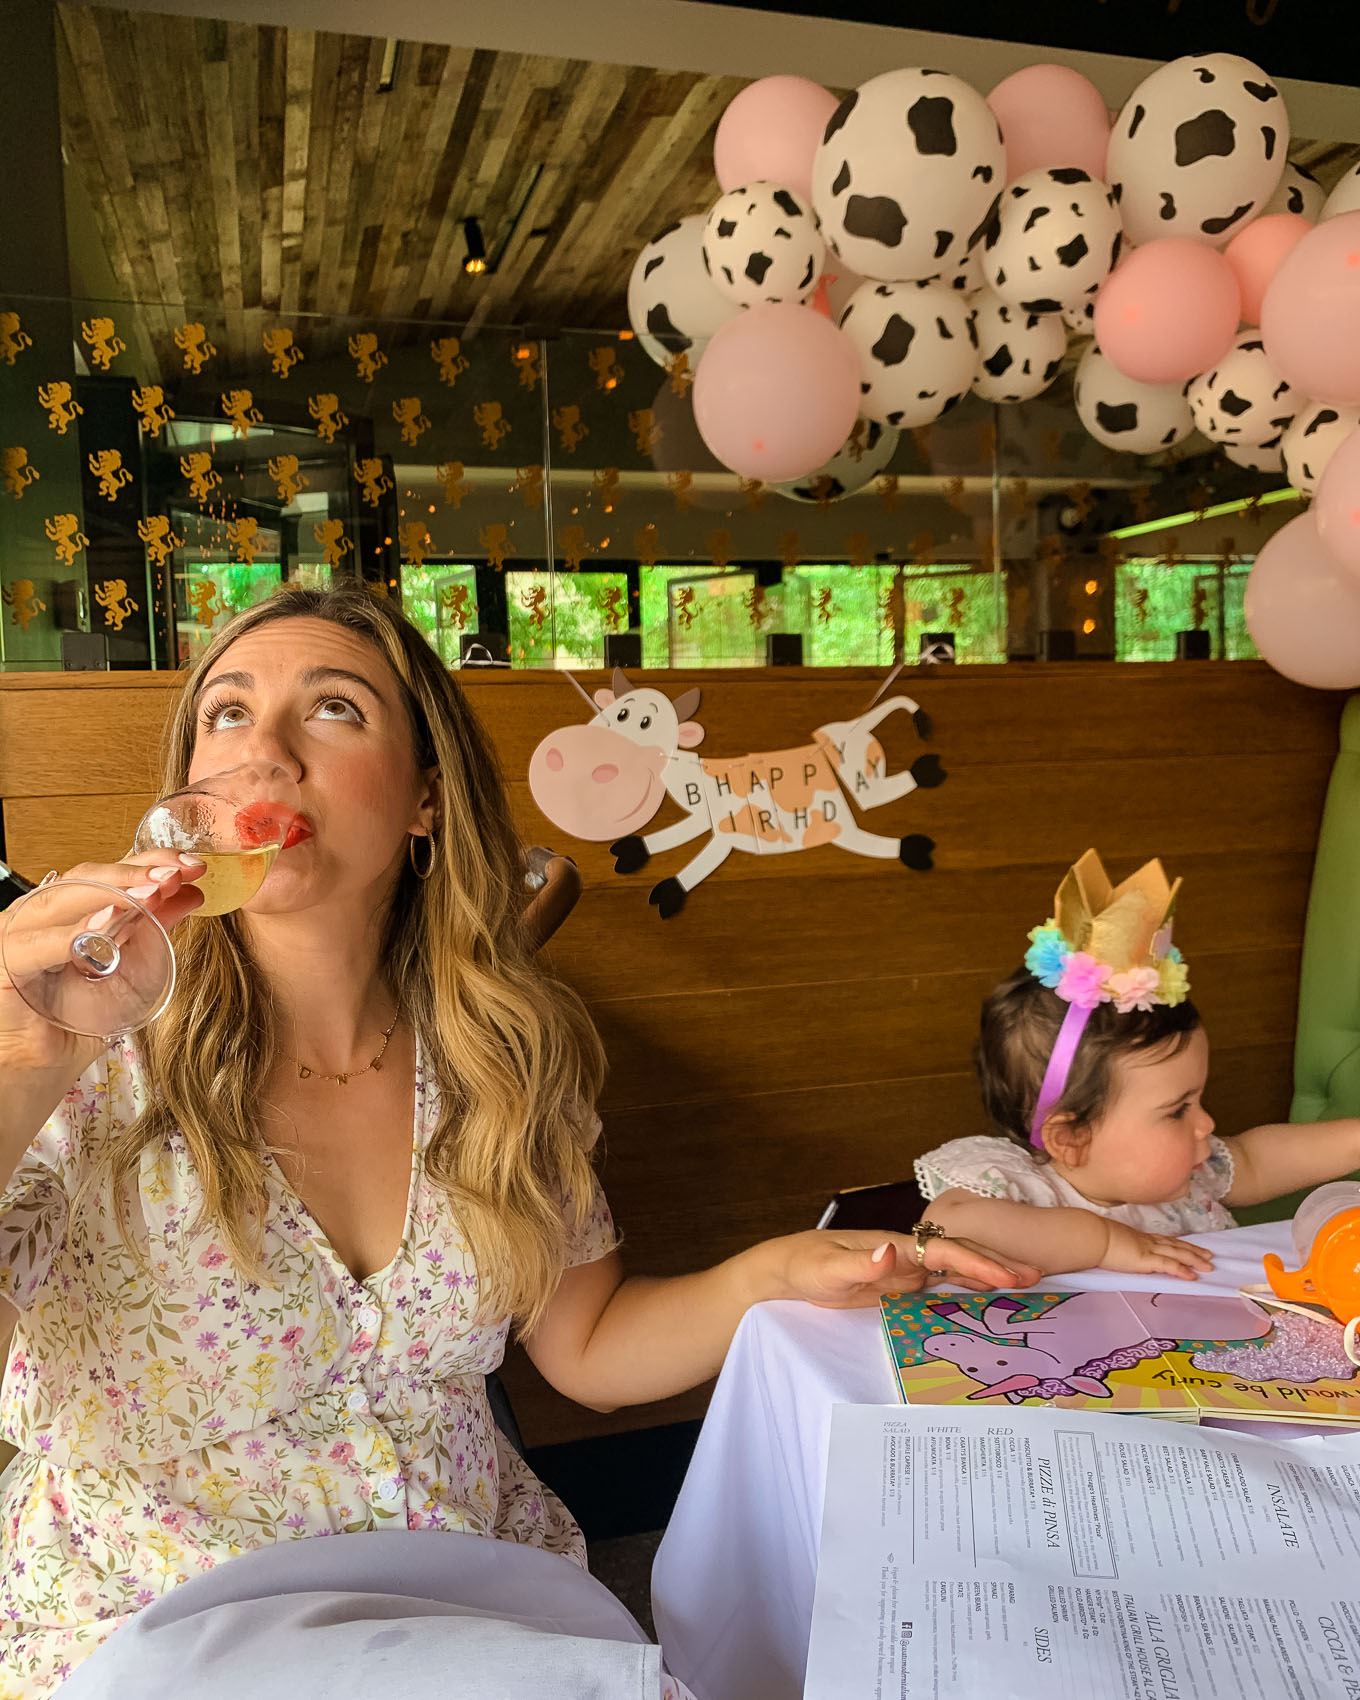 1st Birthday by popular Chicago lifestyle blog, Glass of Glam: image of a Mom and her 1 year old baby daughter sitting next to a Amazon QIYNAO White and Blacke Dairy Cow Happy Birthday Banner, Amazon Cow Print Beverage Napkins, Amazon Finypa Funny Cow Party Decorations Balloon 85pcs Arch Garland.